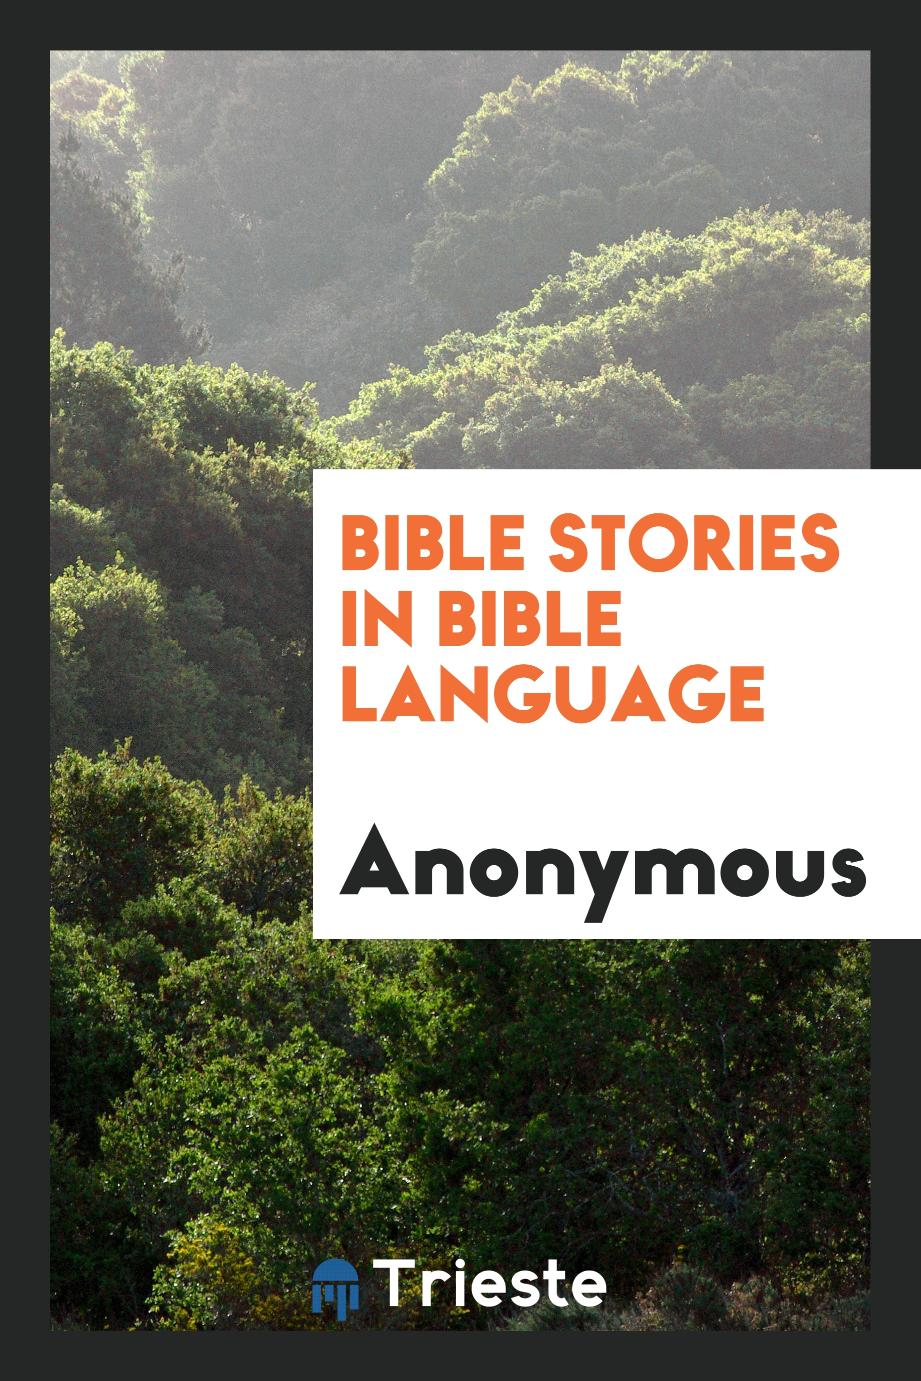 Anonymous - Bible Stories in Bible Language